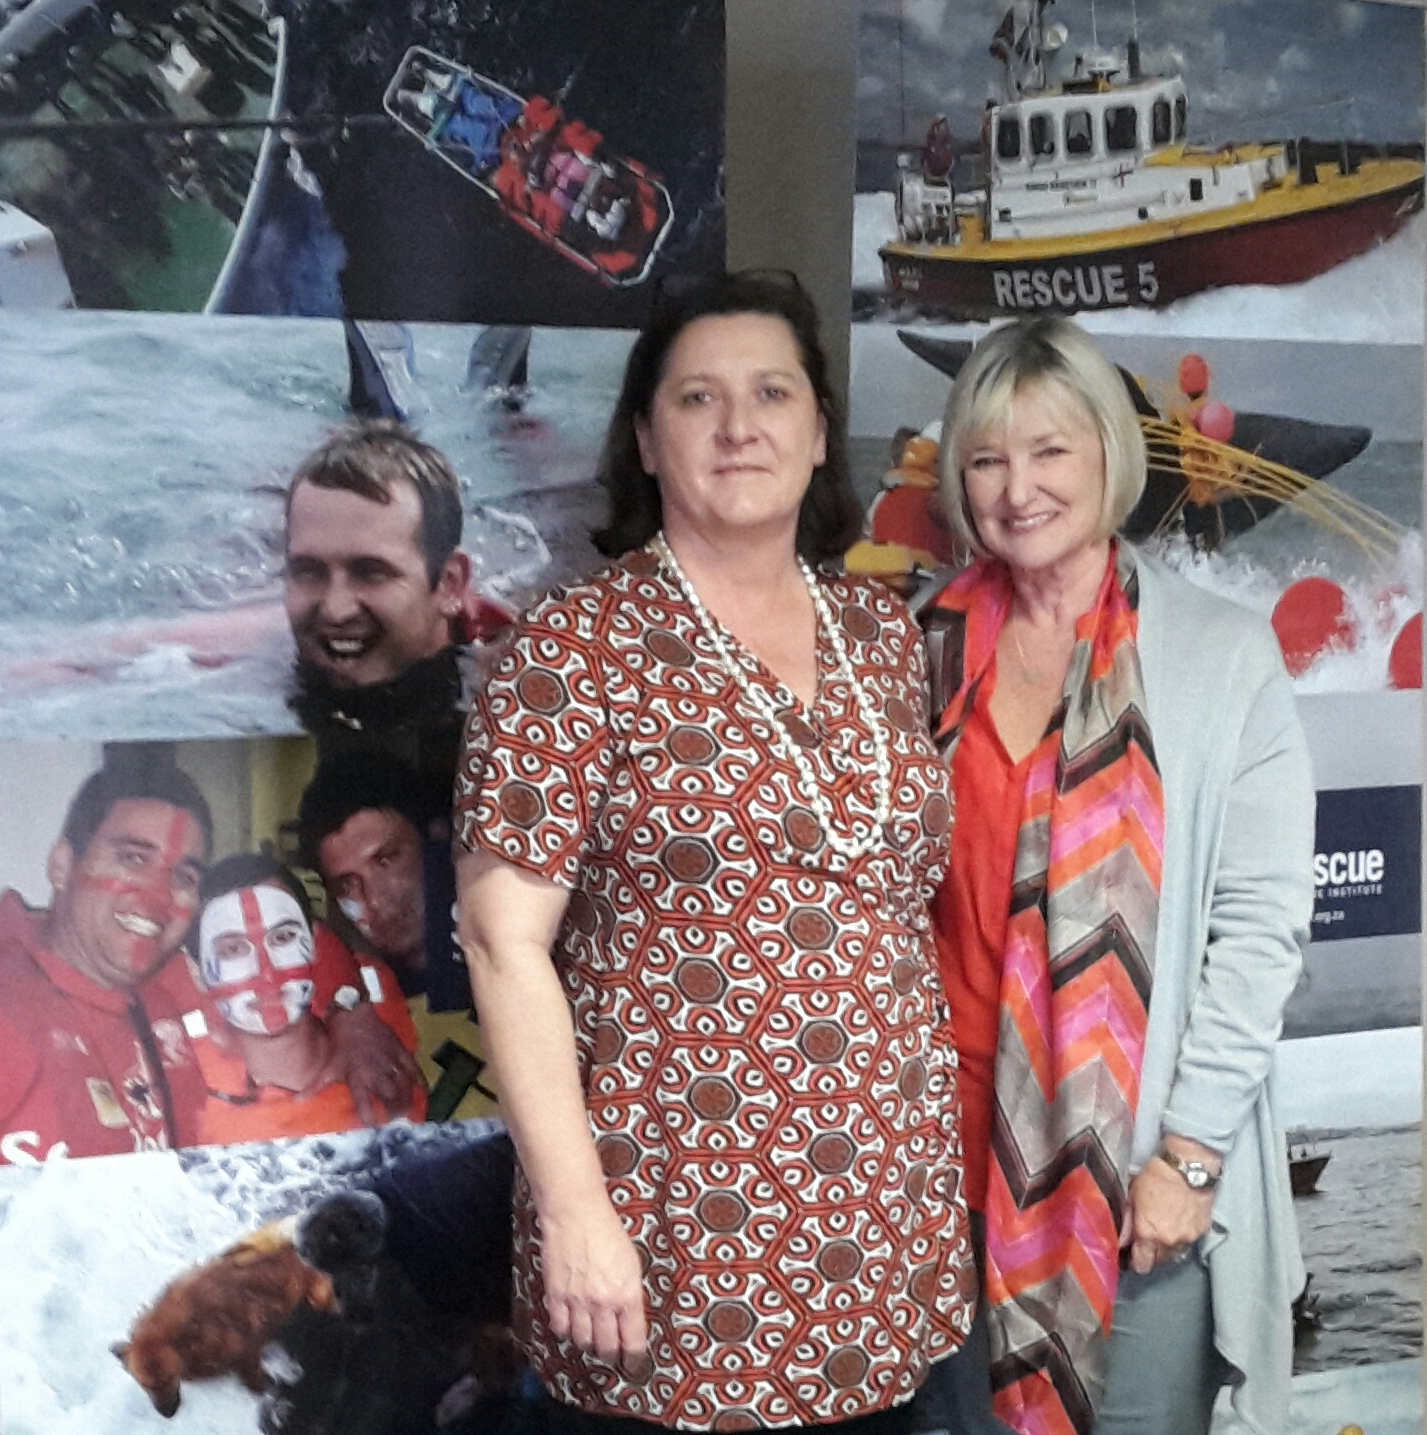 NSRI's Alison Smith and Janet Burgess